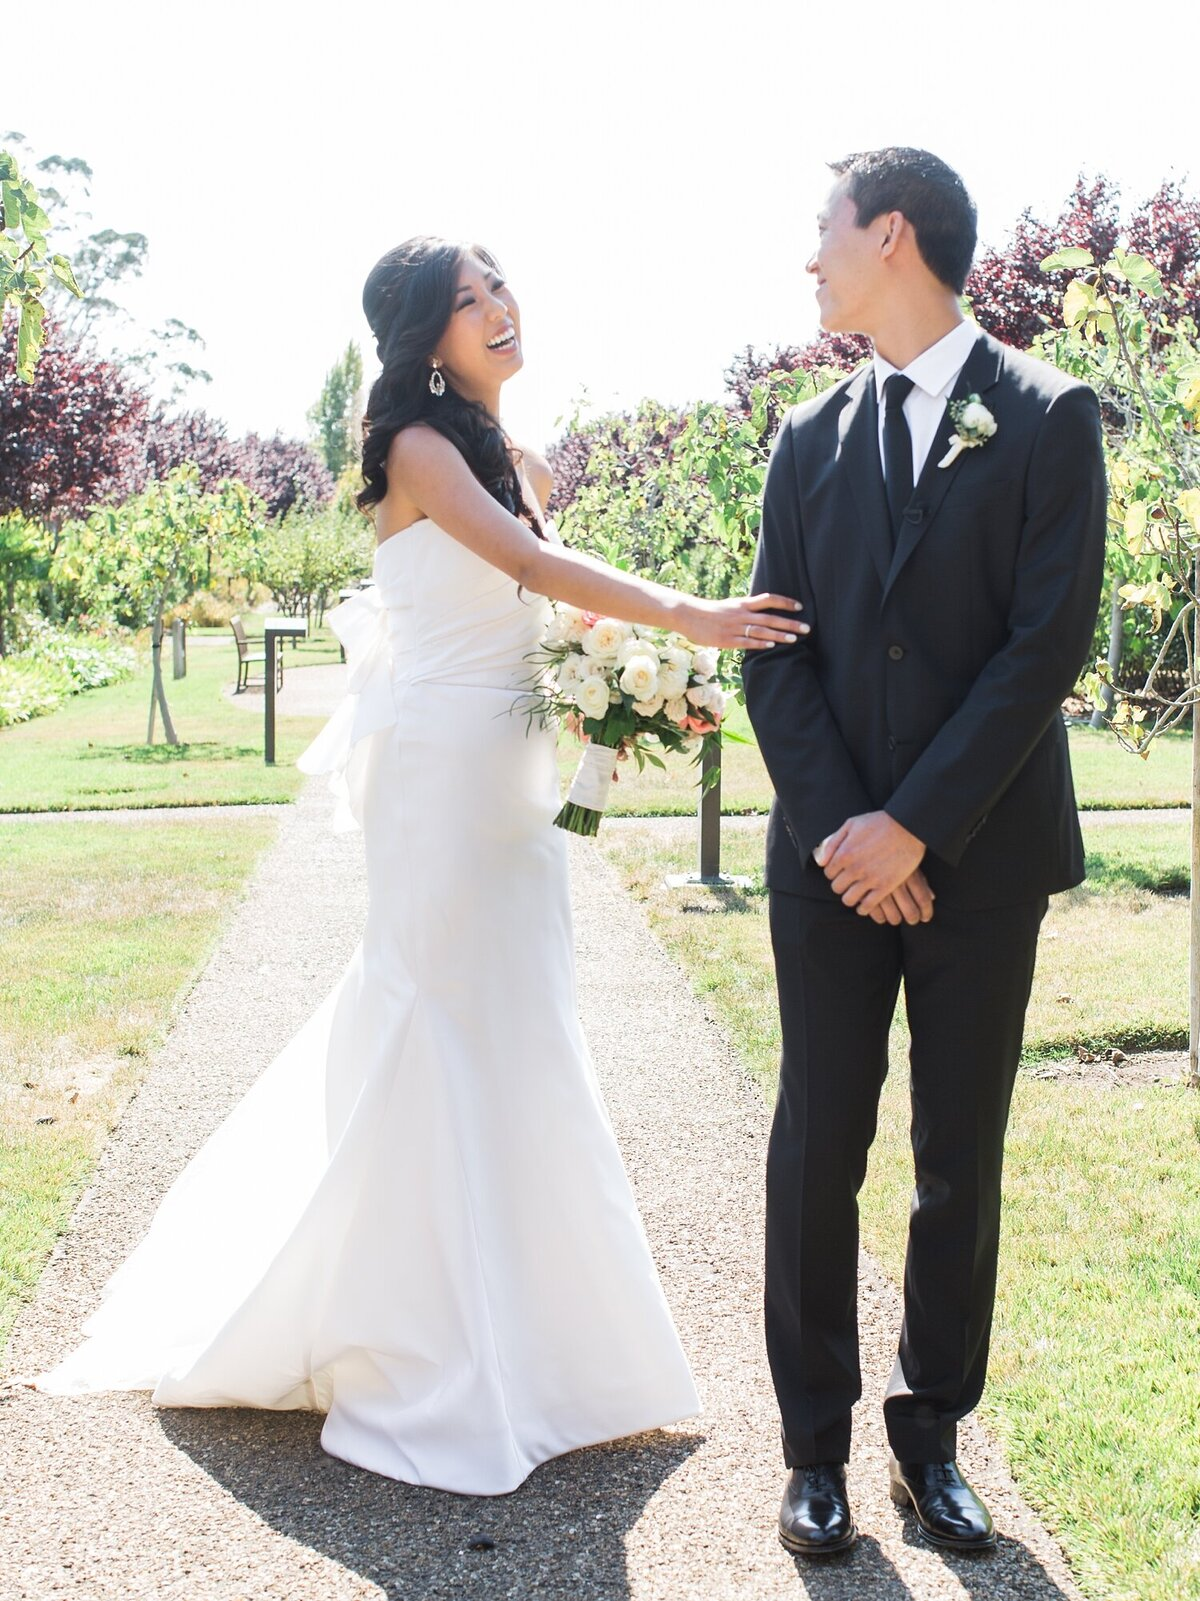 Domaine_Chandon_Winery_Yountville_Wedding-006